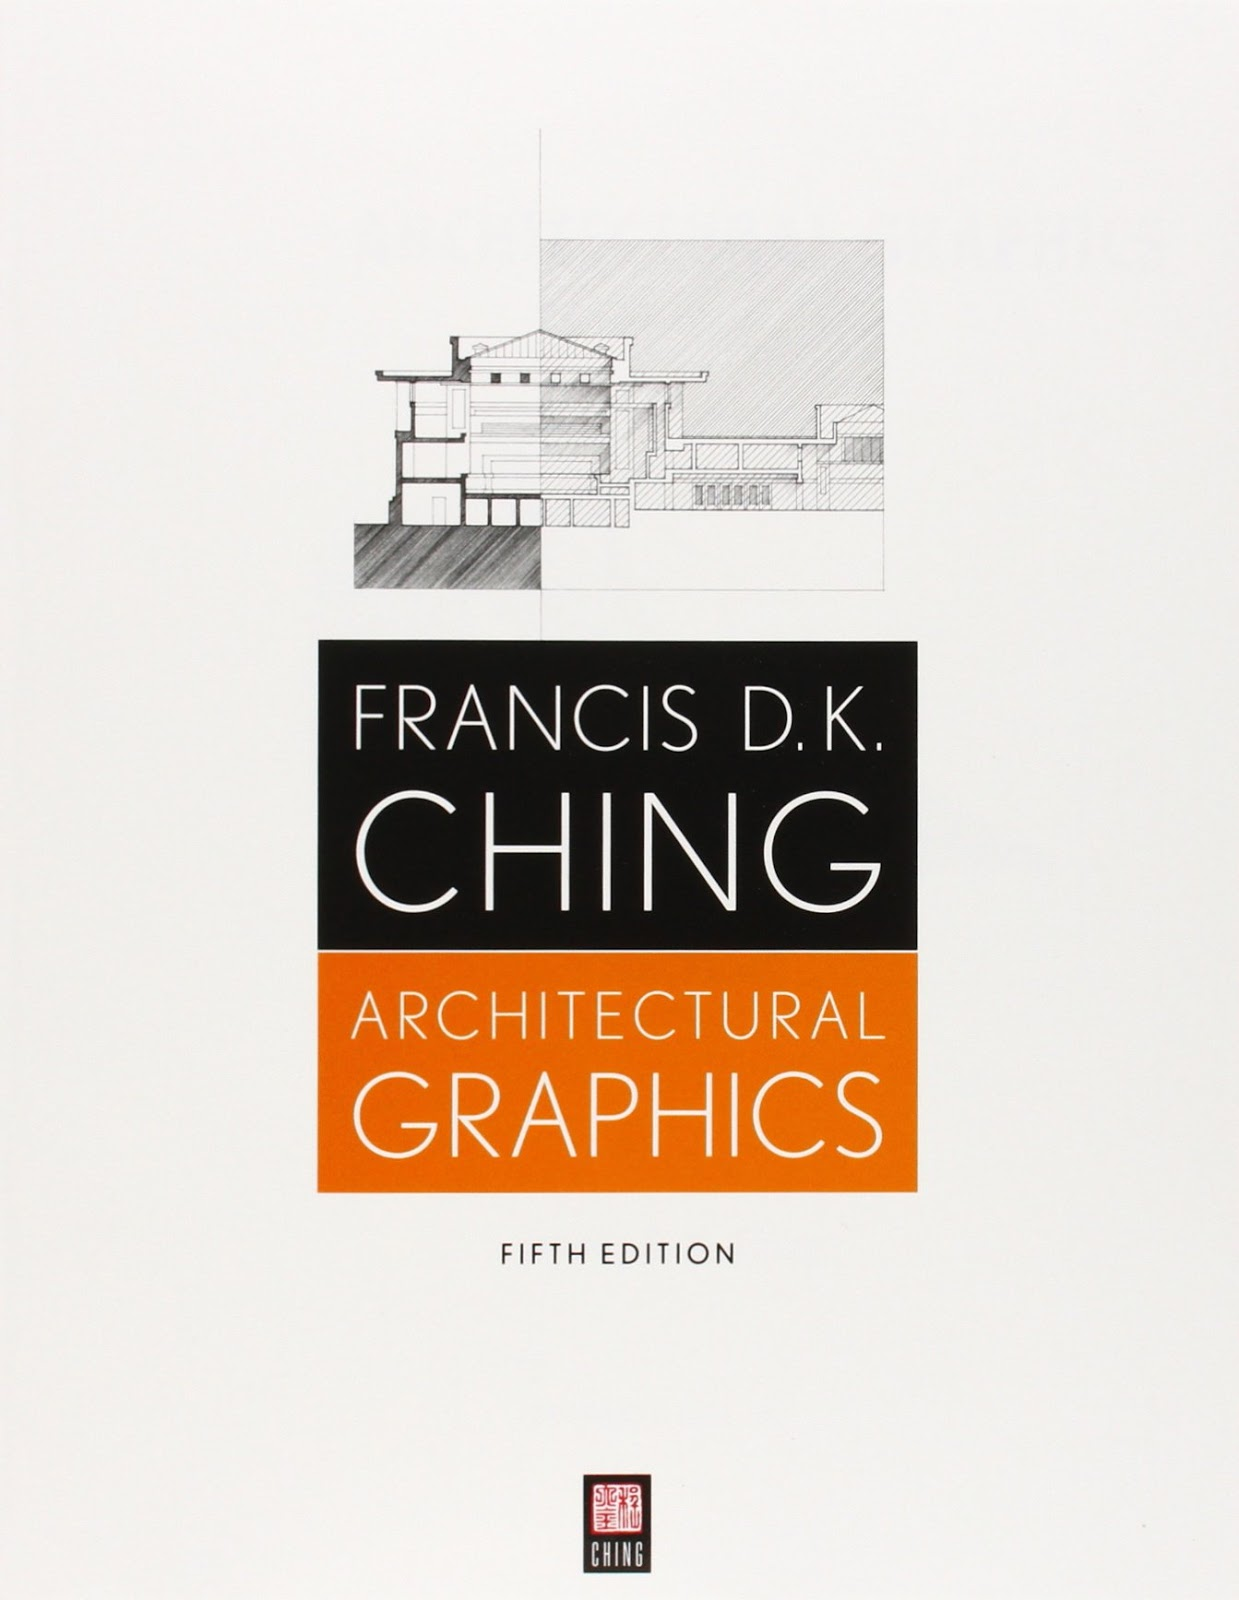 Francis-DK-Ching-Architectural-Graphics-6th-Ed-2015-free-download-ebook-archicrewindia